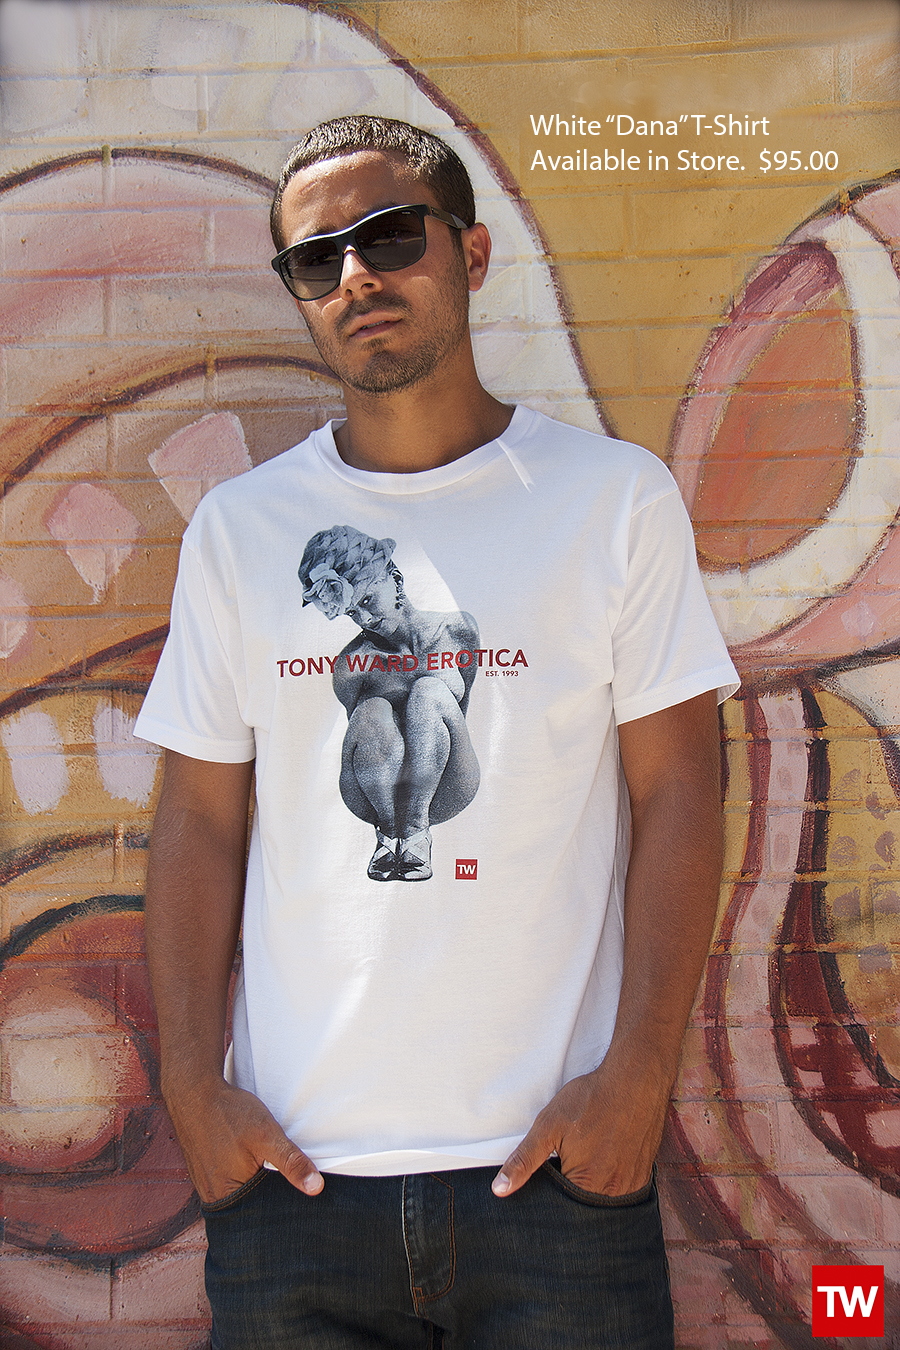 Tony_Ward_Studio_e_commerce_store_t-shirts_white_Dana_t-shirt_sale_model_Julian